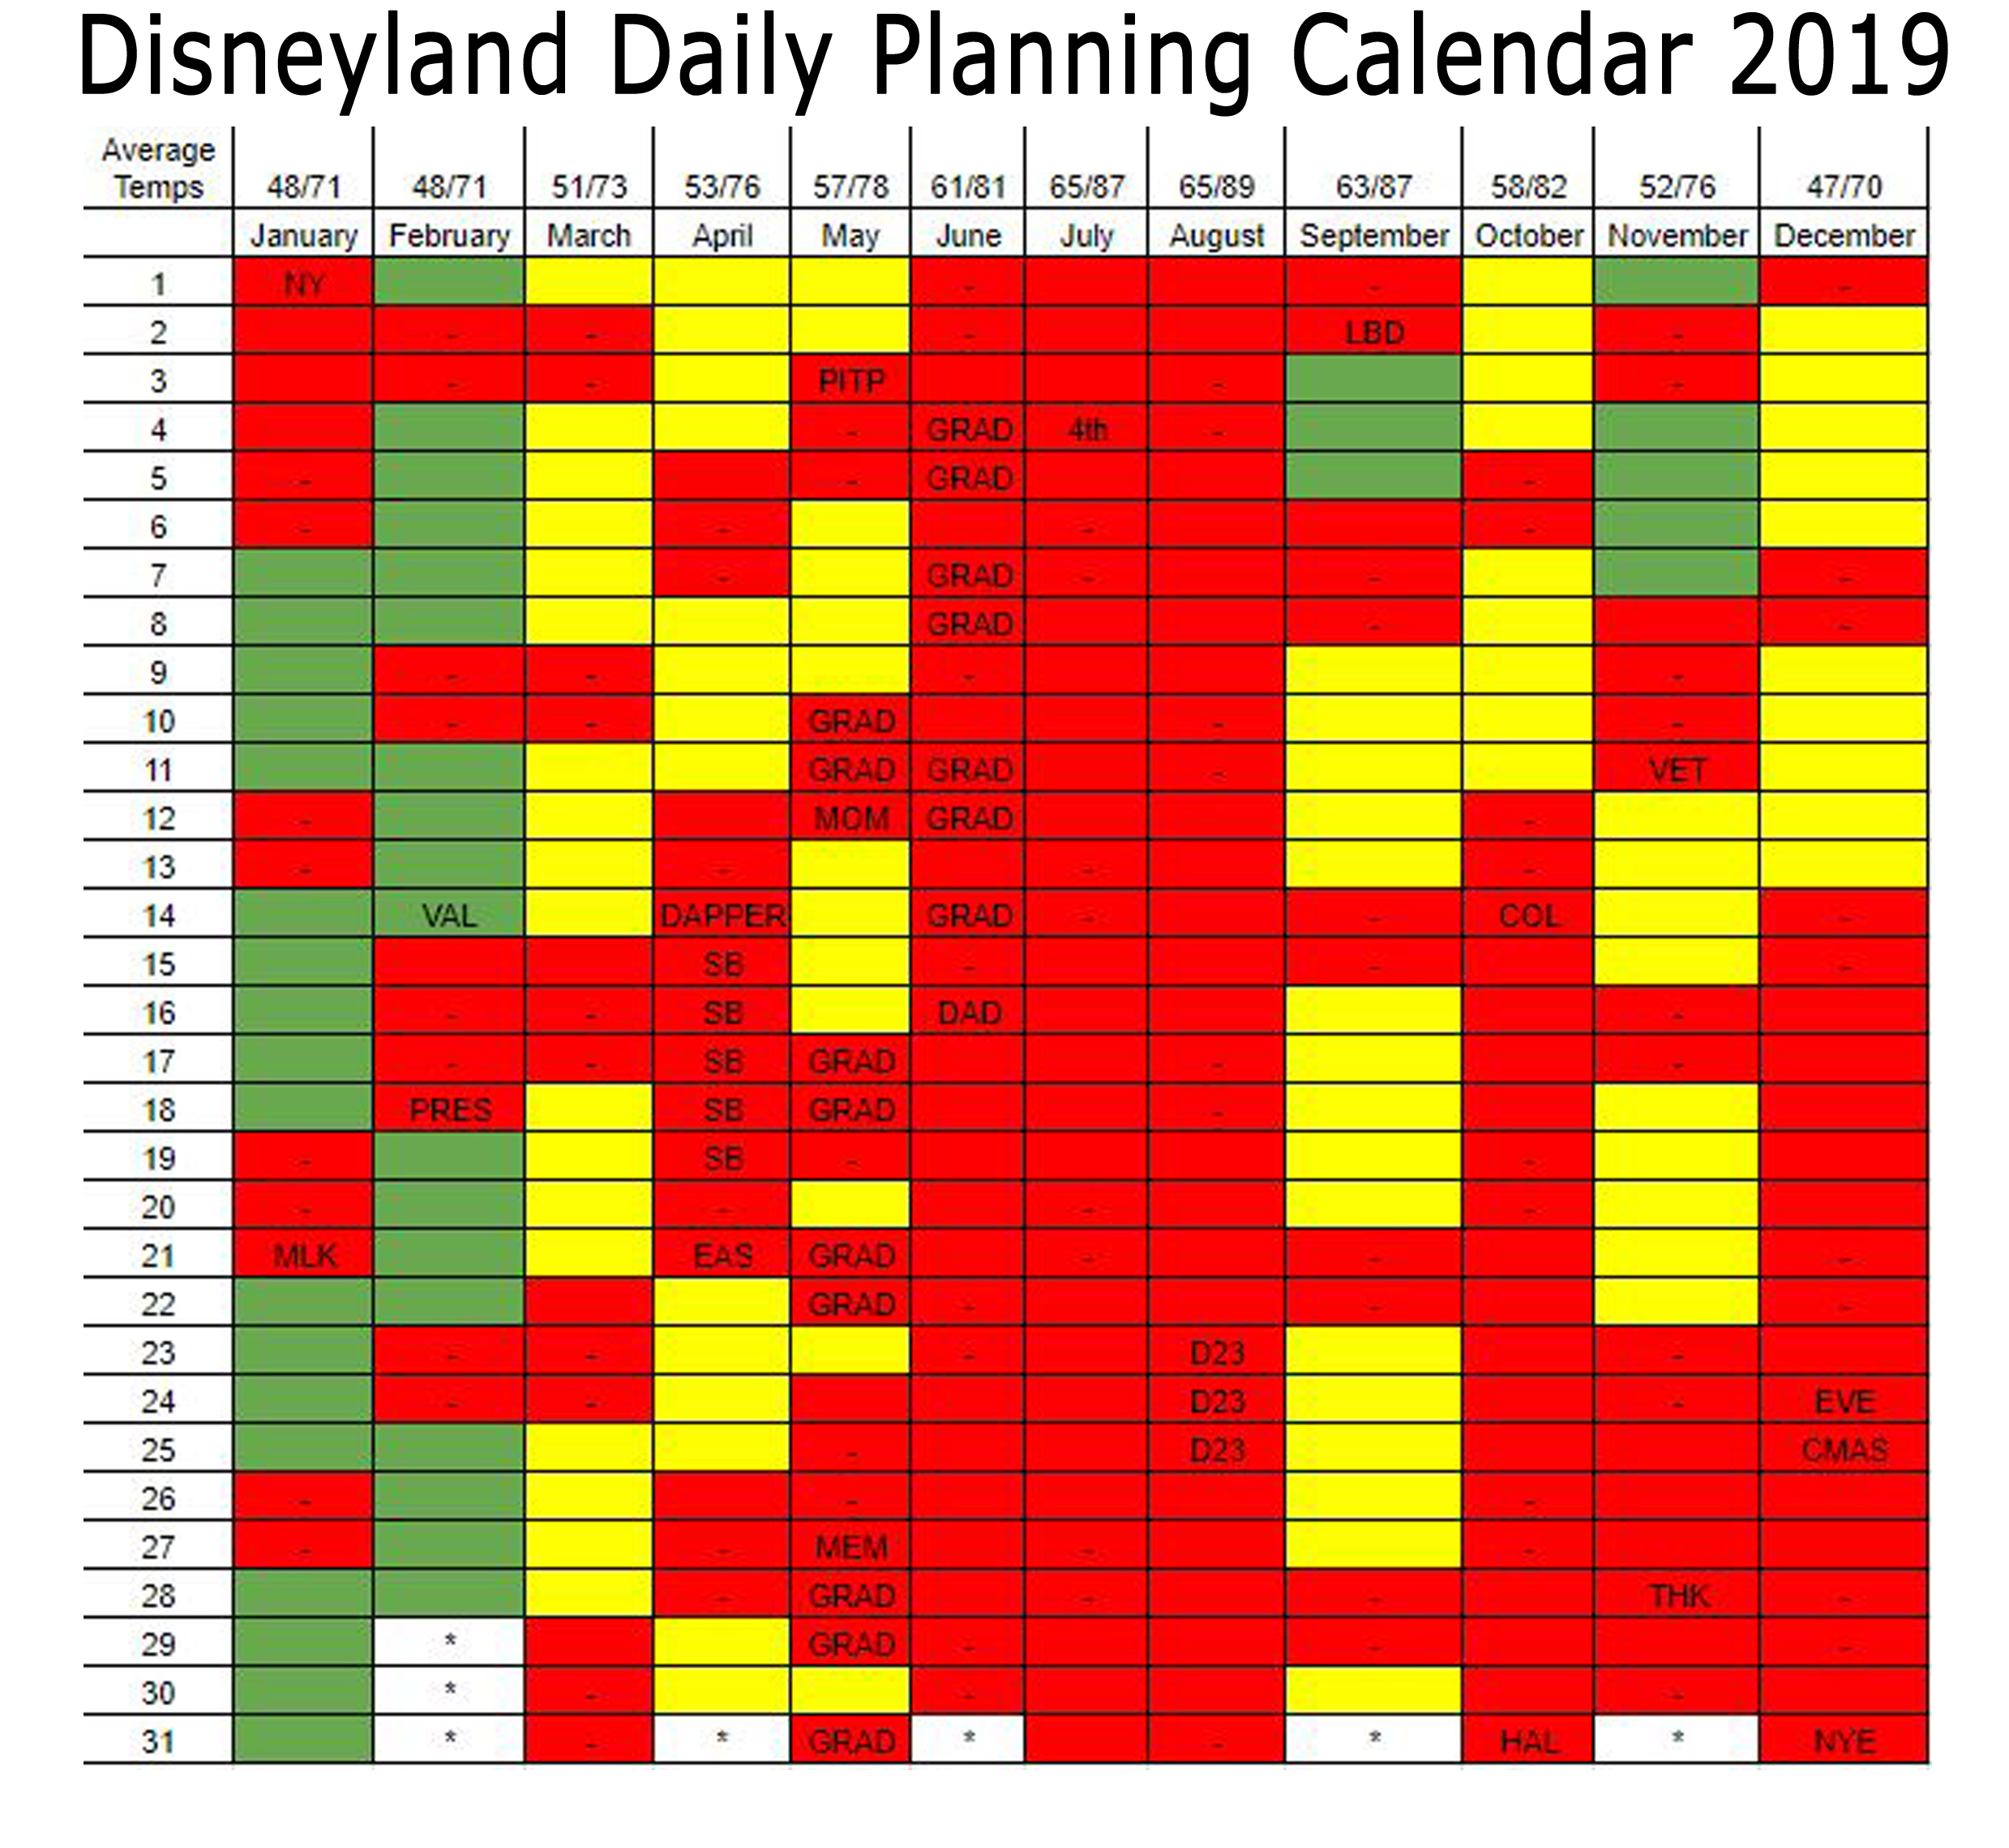 February 2020 Calendar Disneyland Hours Step 1: Pick a Date | Disneyland Daily